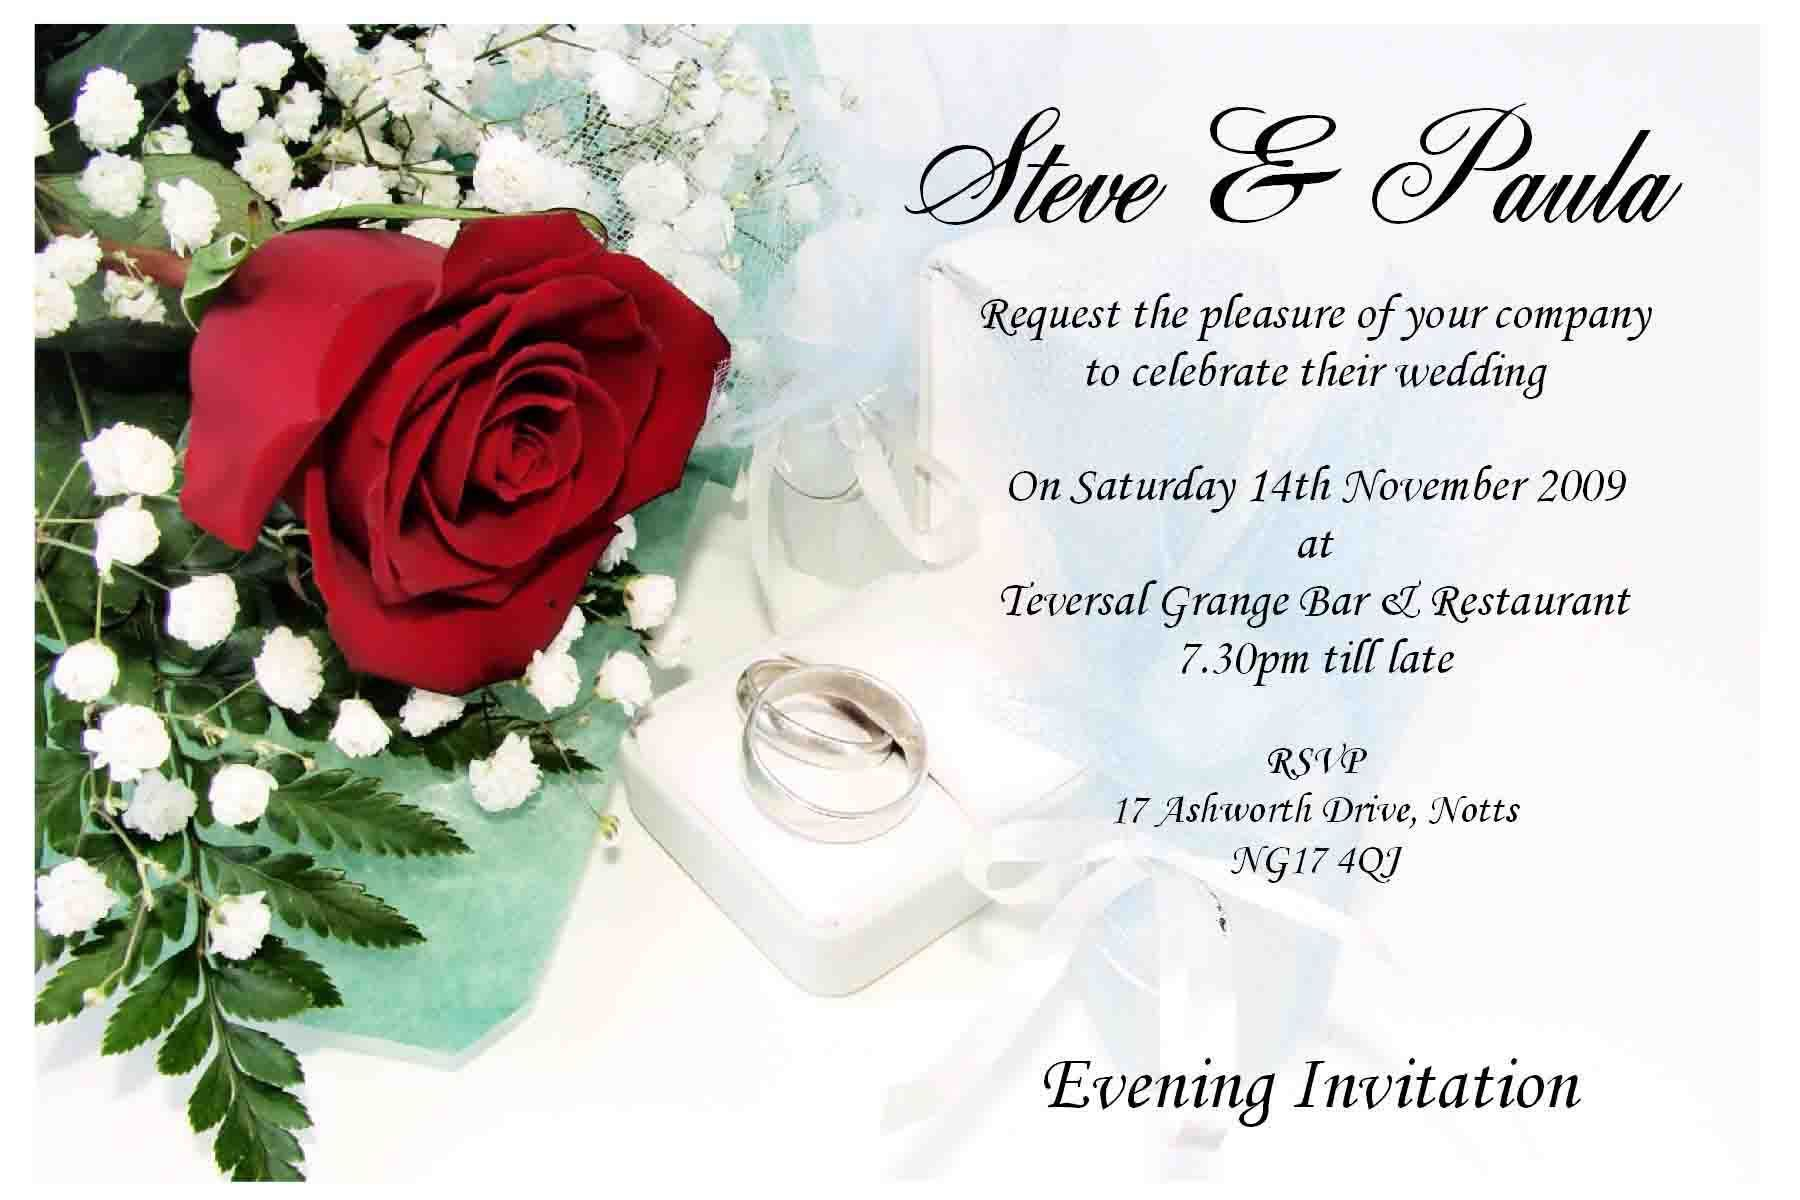 wedding invitation : wedding invitation cards online - Free ...